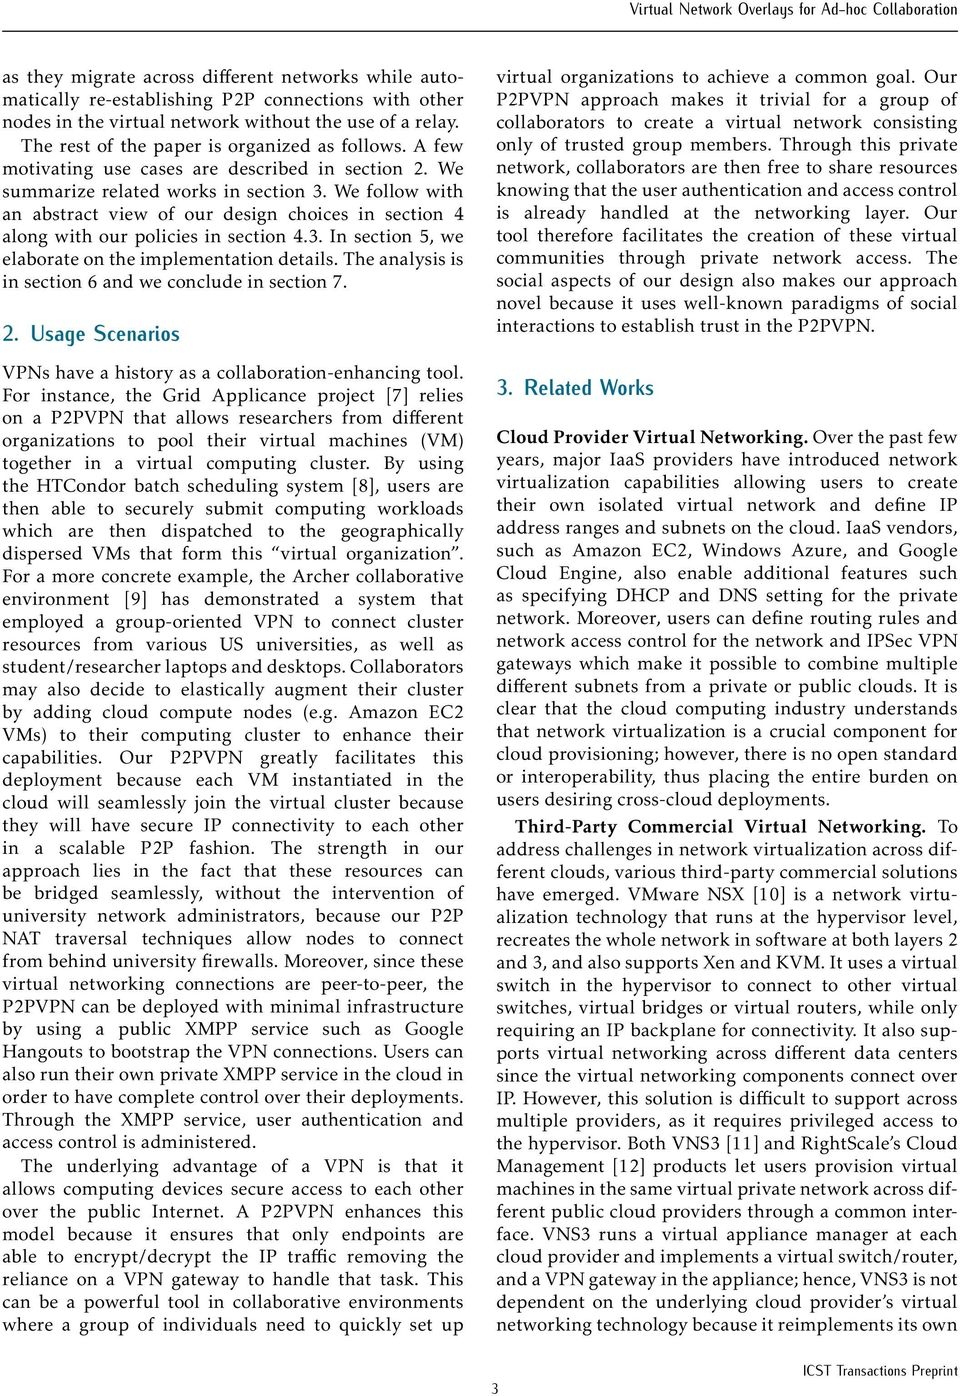 We follow with an abstract view of our design choices in section 4 along with our policies in section 4.3. In section 5, we elaborate on the implementation details.